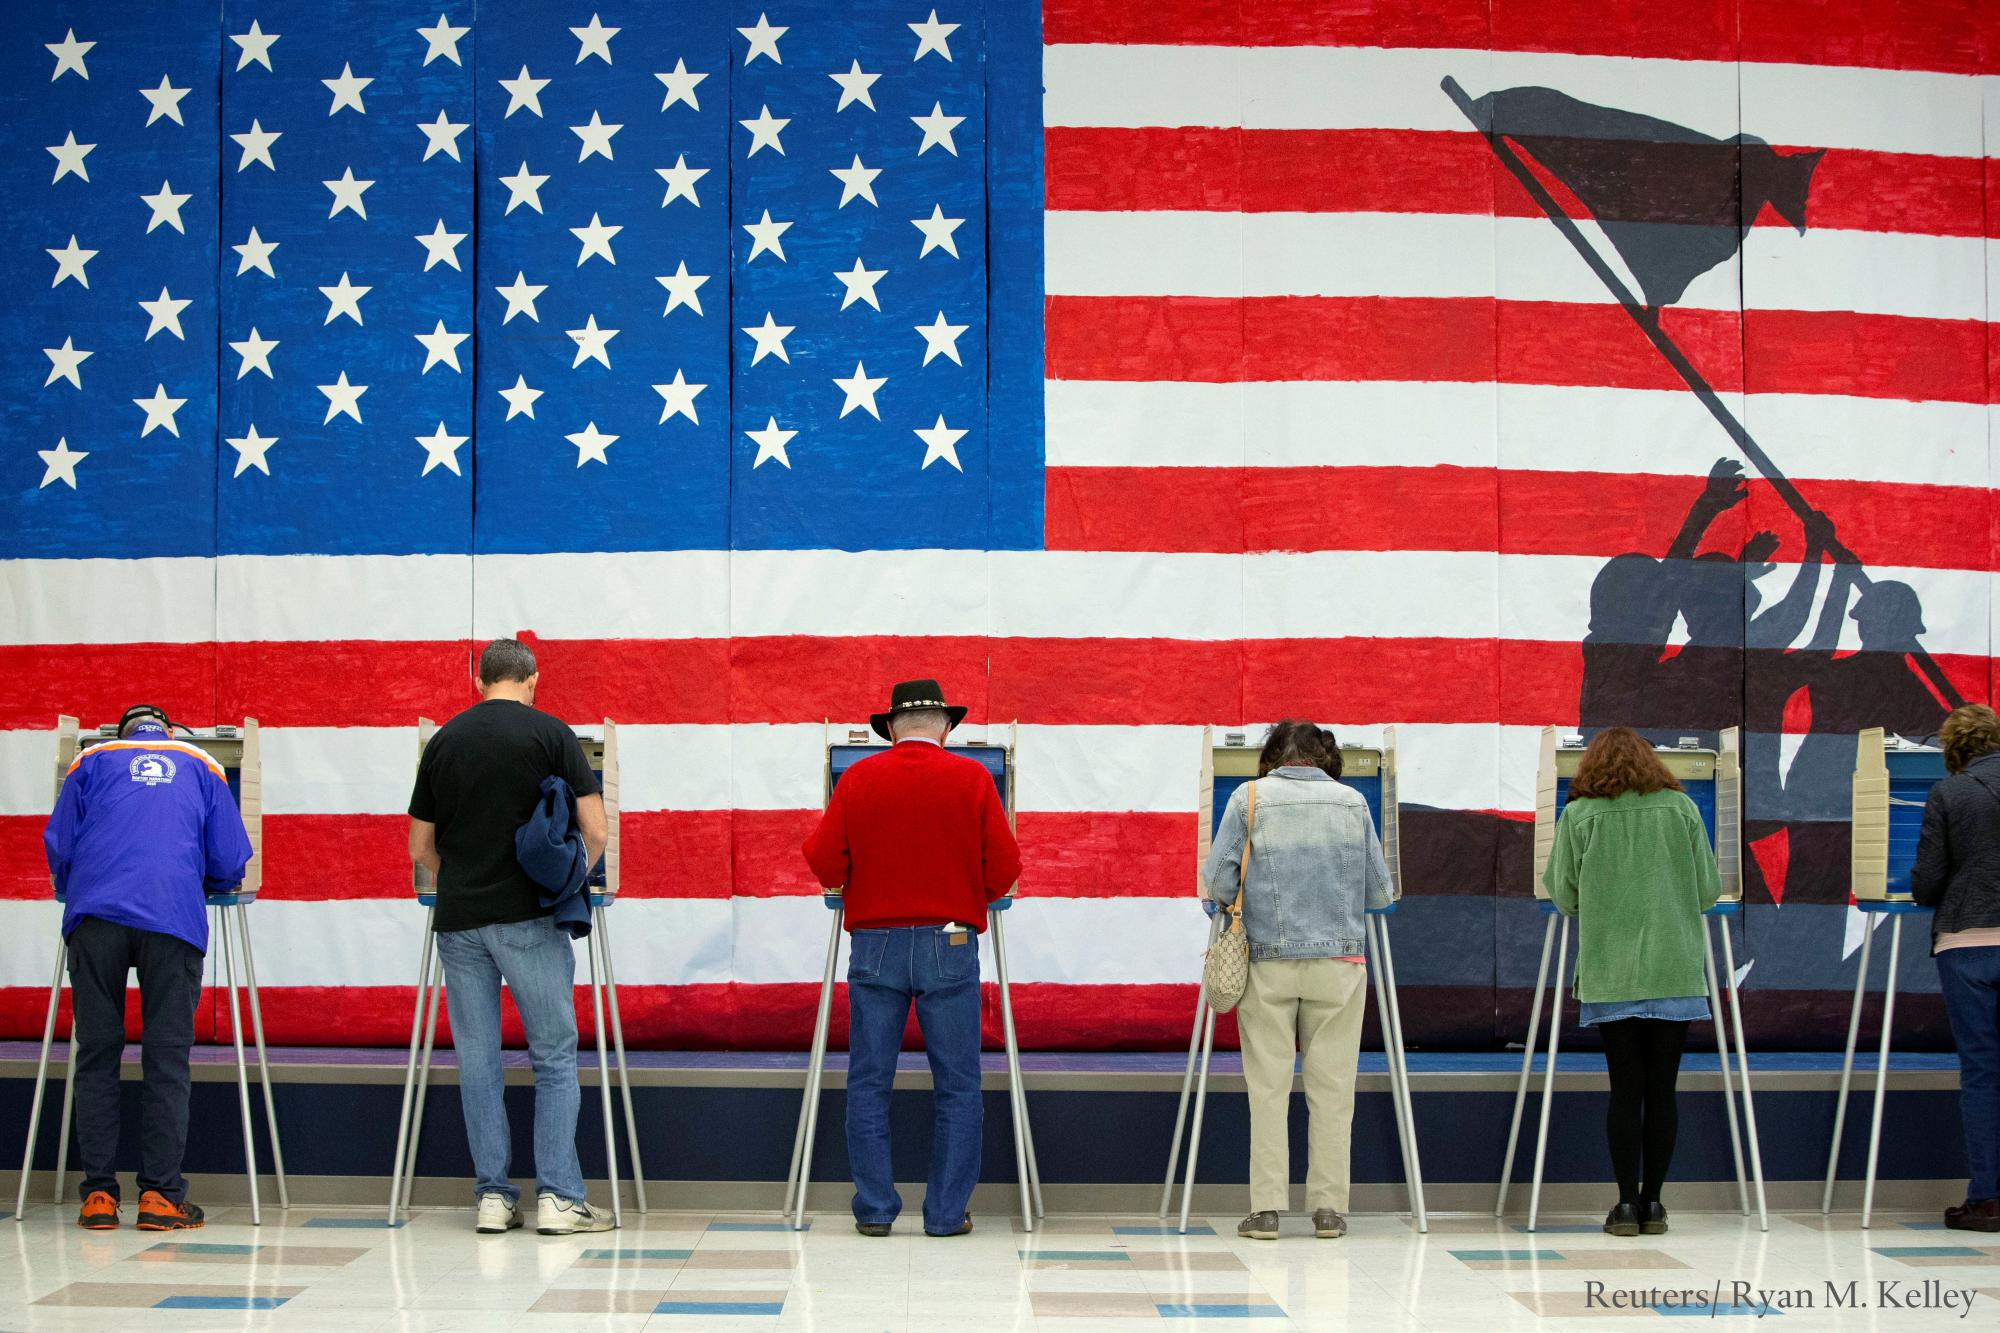 Americans voting on election day in front of an U.S. flag